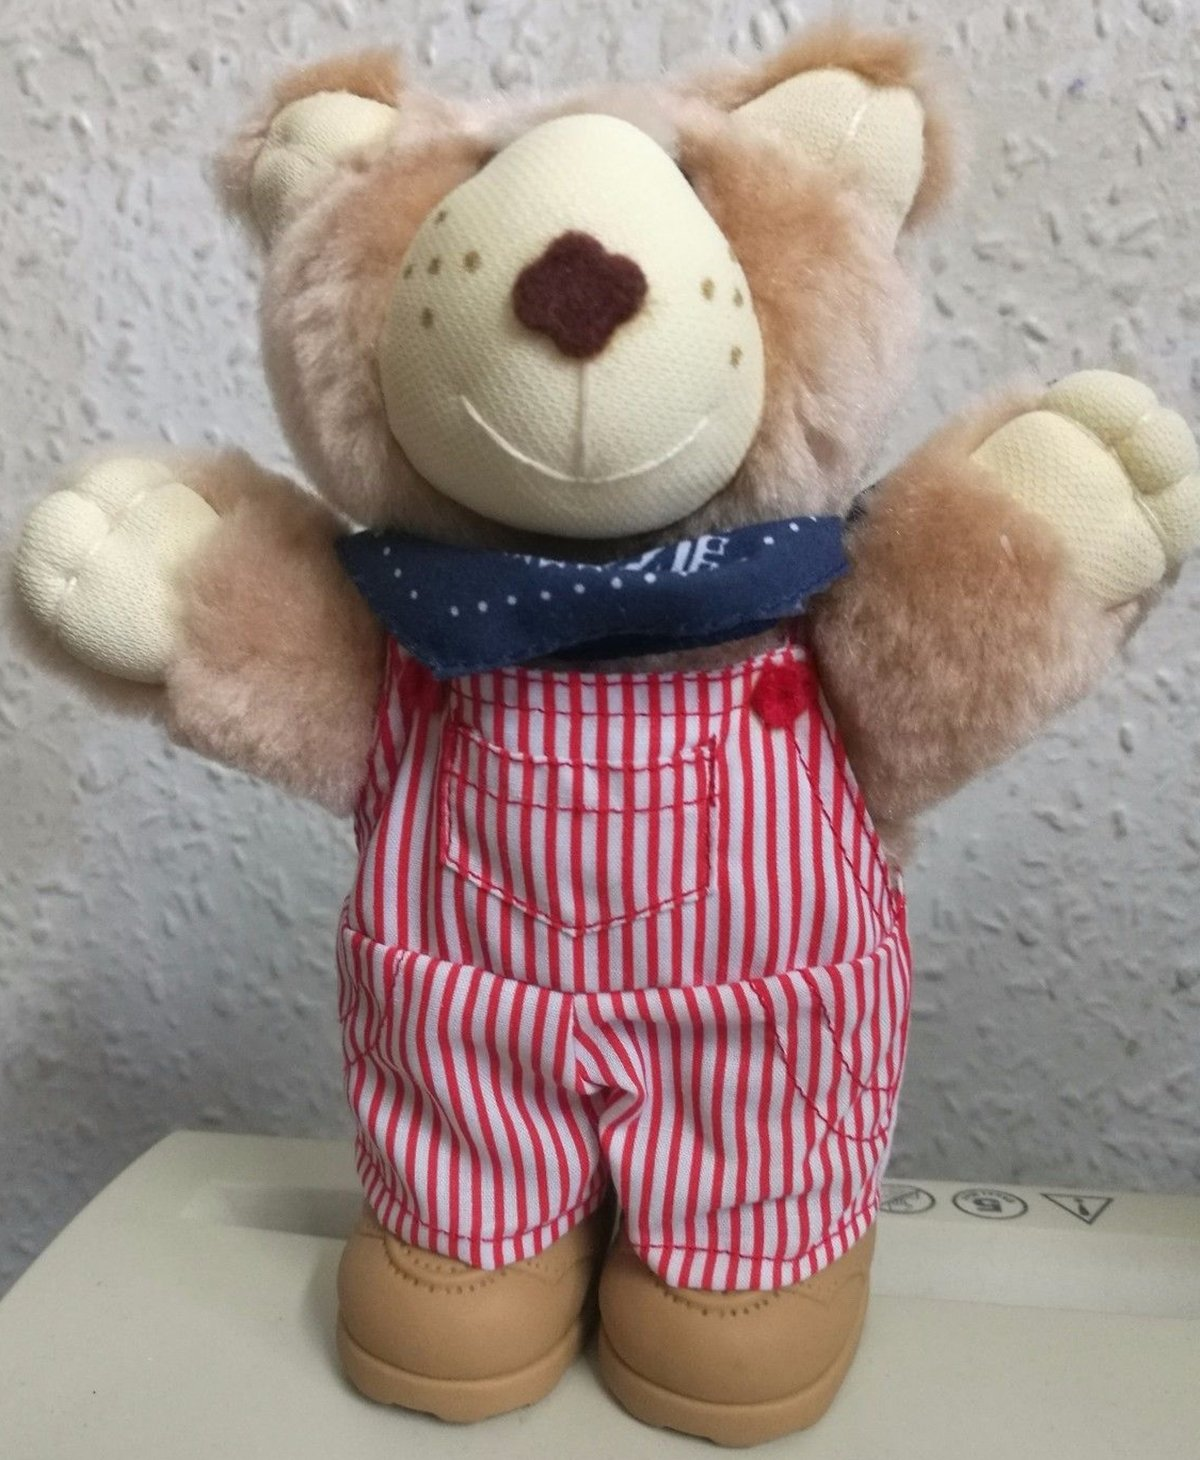 3 49 QUIZ: How Many Of These 15 Cuddly Toys Did YOU Own As A Child?